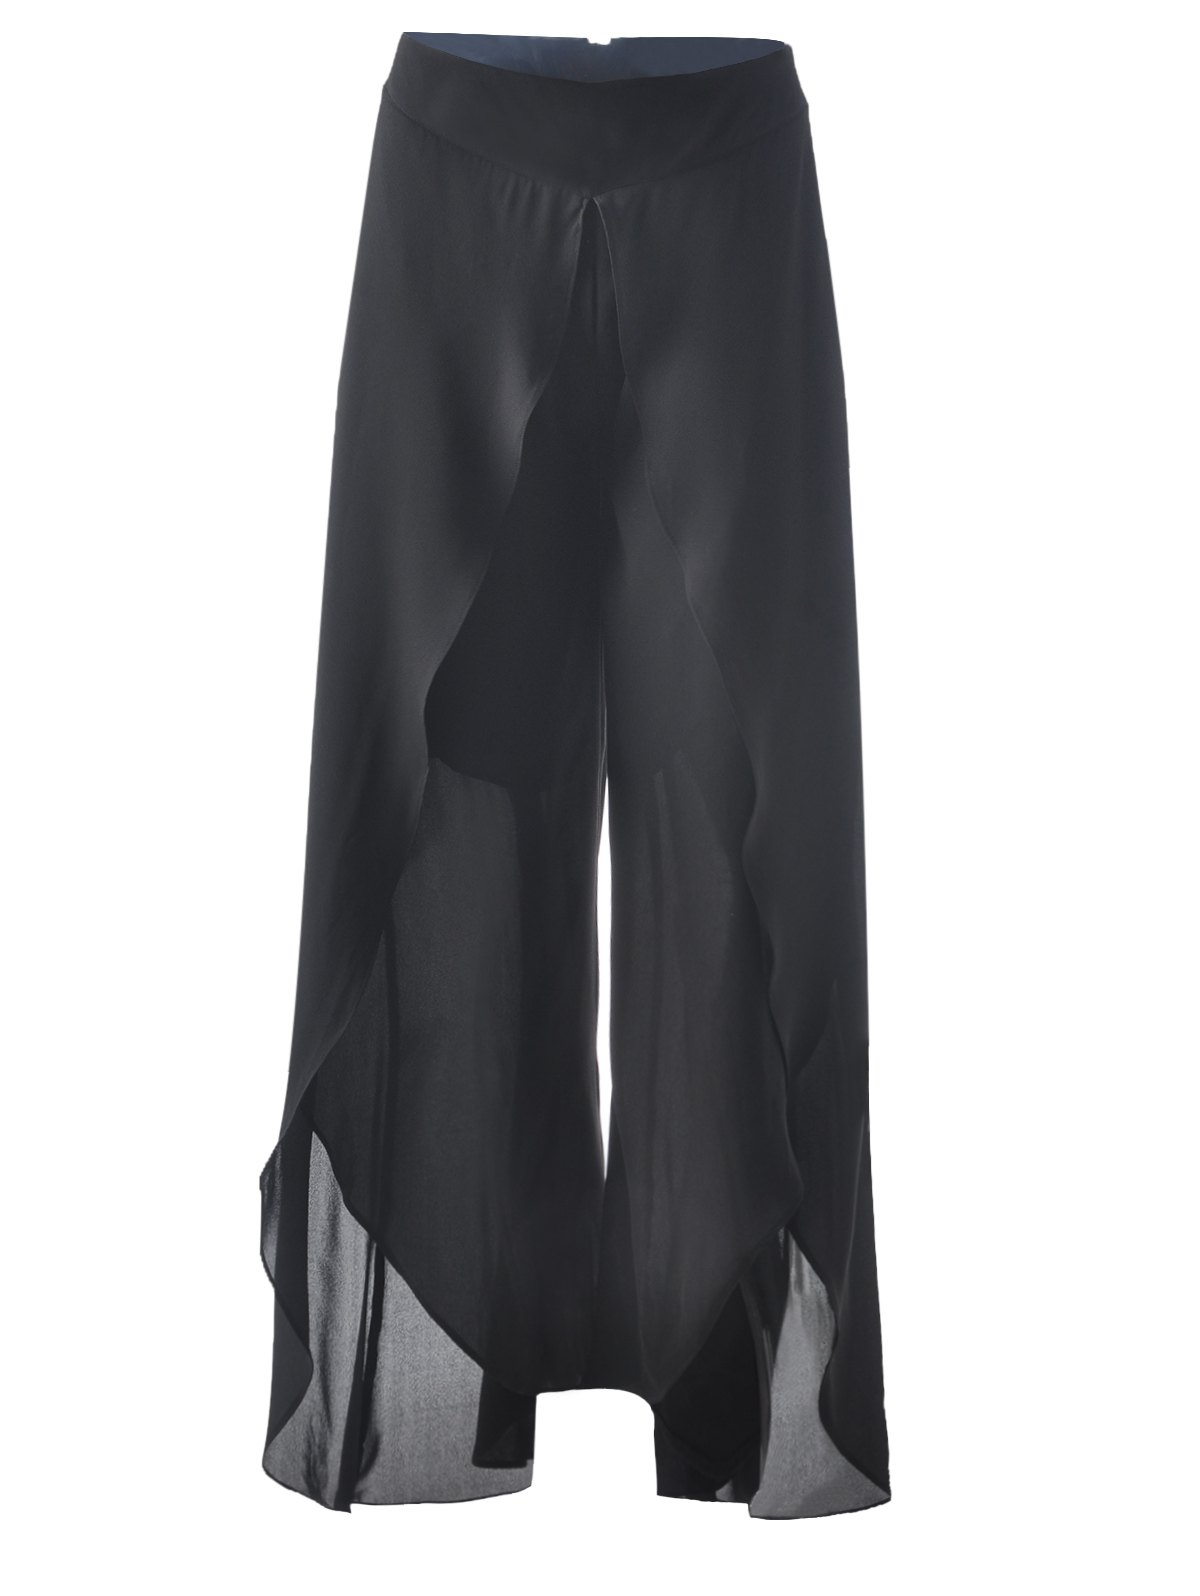 Fashionable Black Irregular Pants For Women - BLACK S